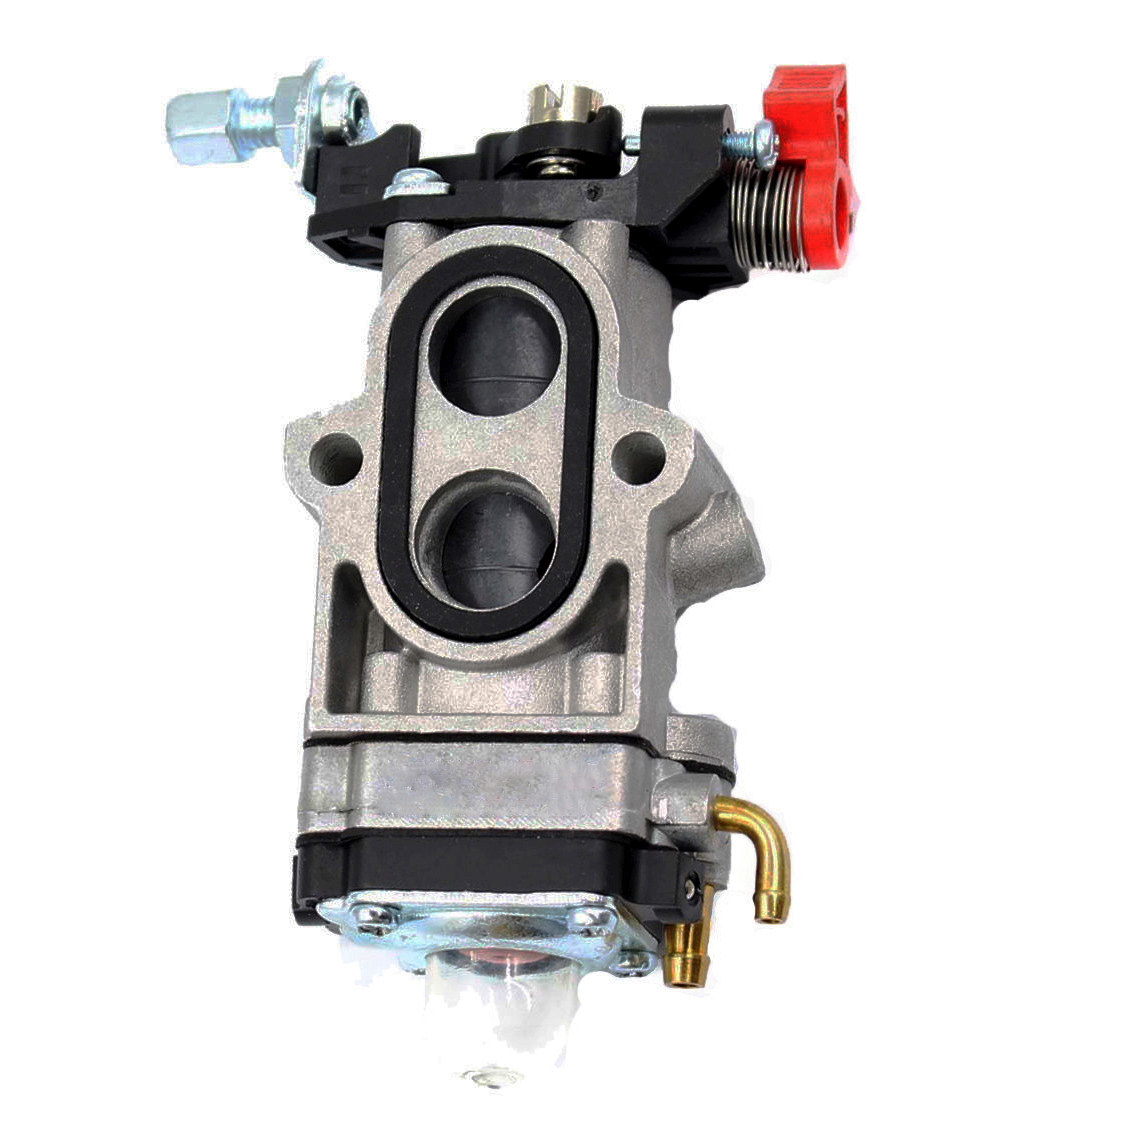 Walbro Carburetor for Red Max EBZ7100RH Backpack Blower & Red Max 511460001 WYA-81-1